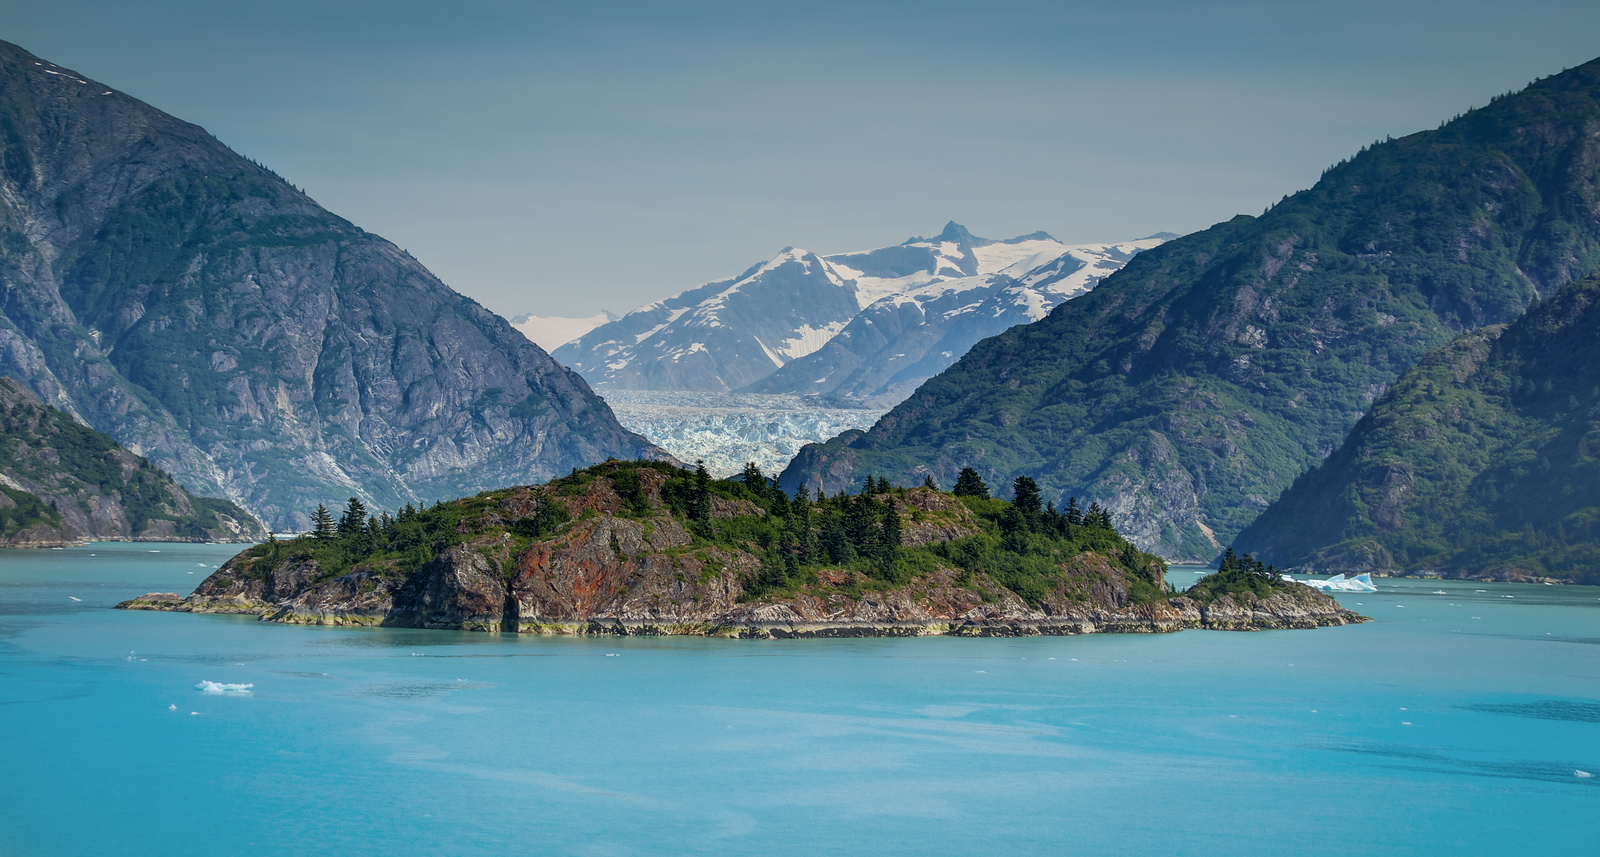 Island in the Alaskan Fjord